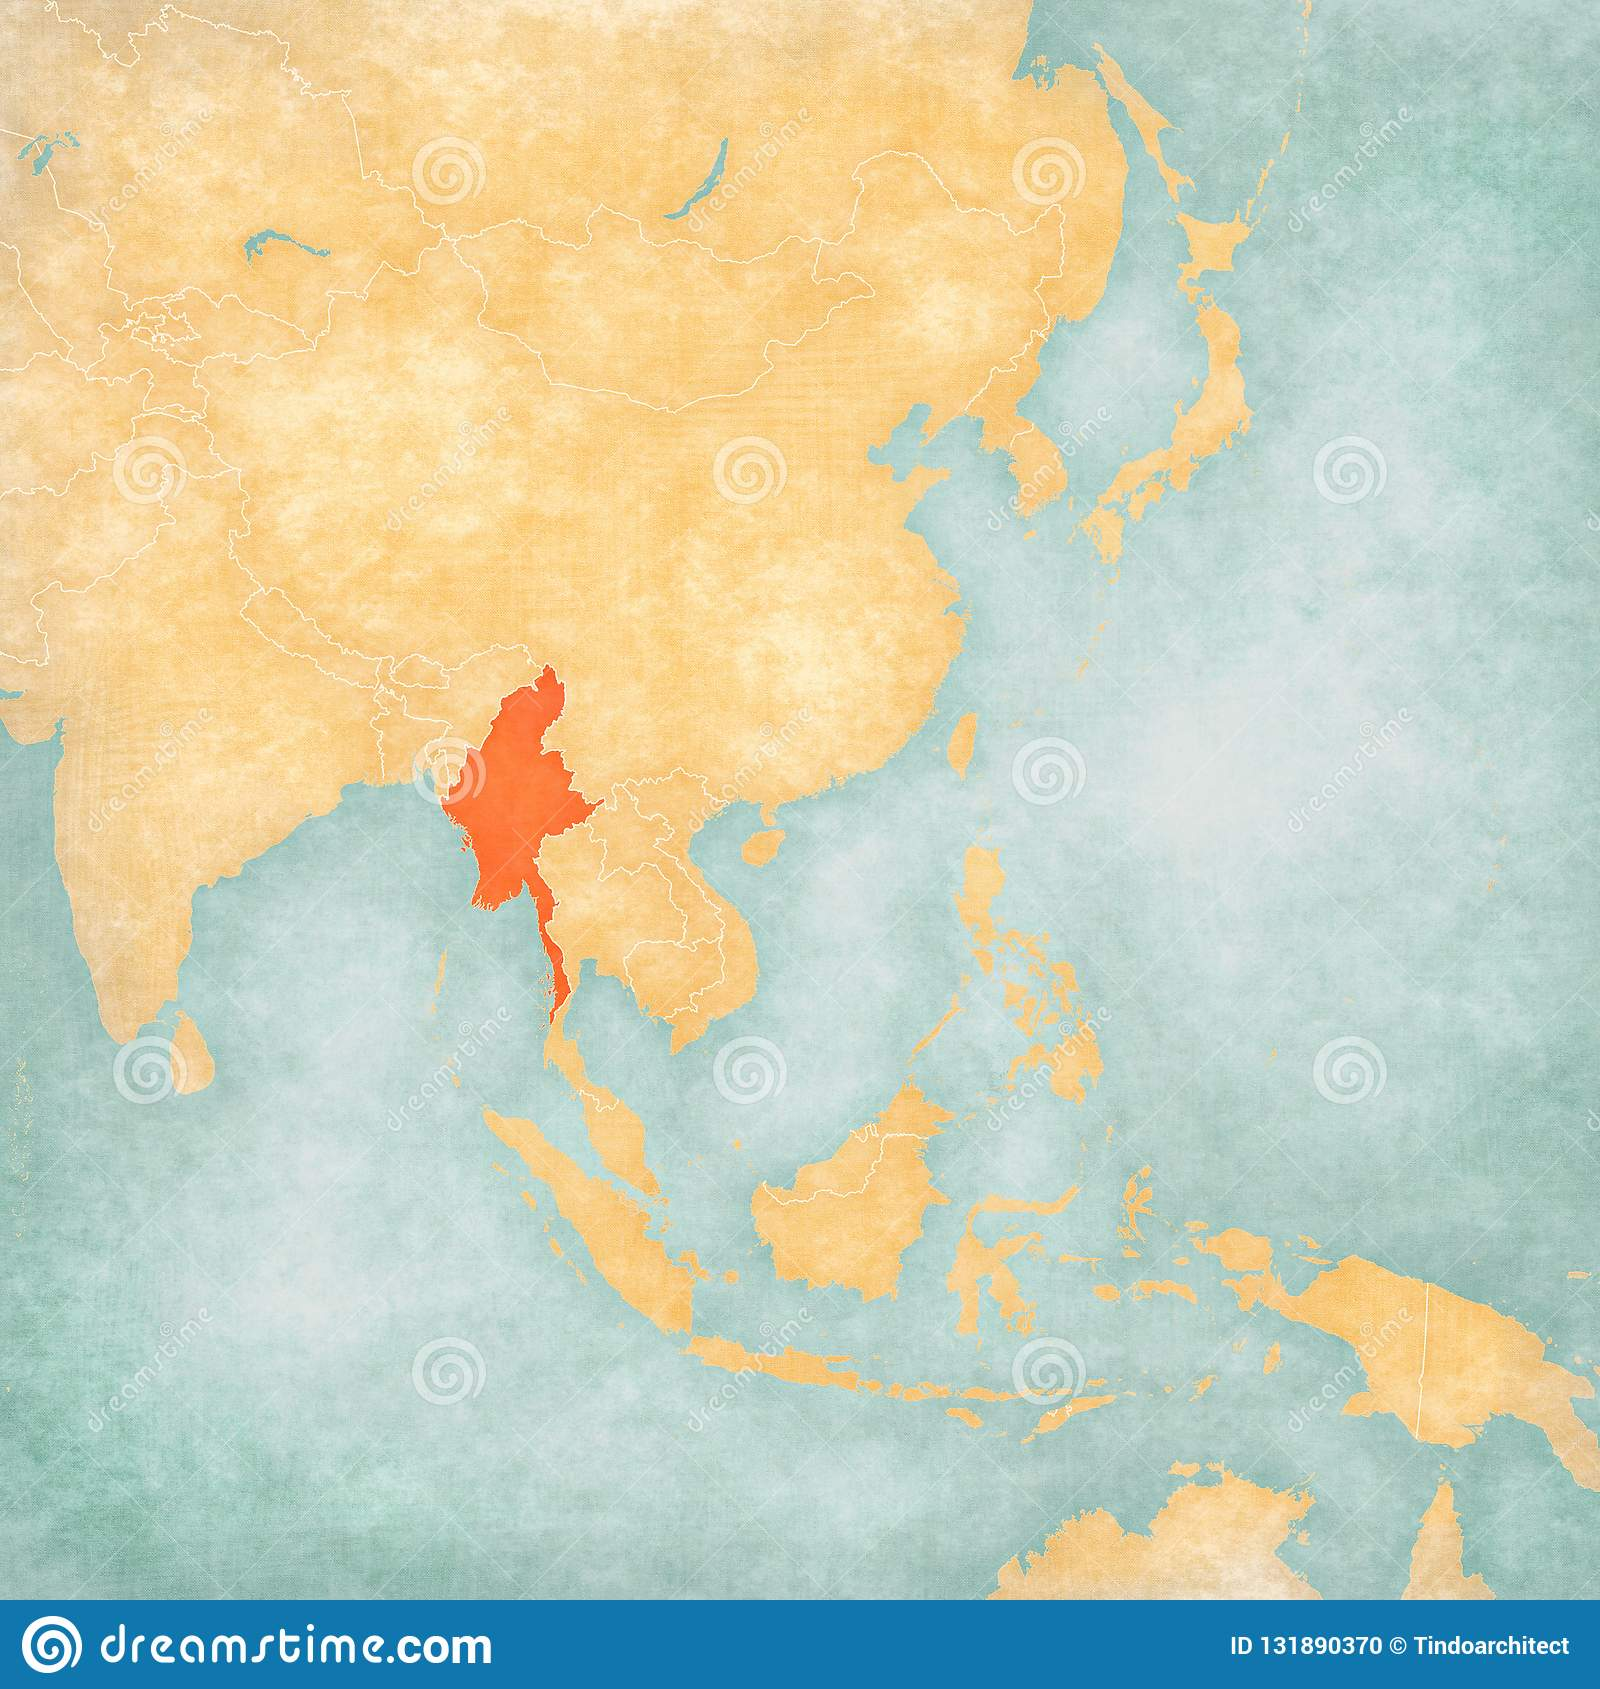 Myanmar On Map Of Asia.Map Of East Asia Myanmar Stock Illustration Illustration Of